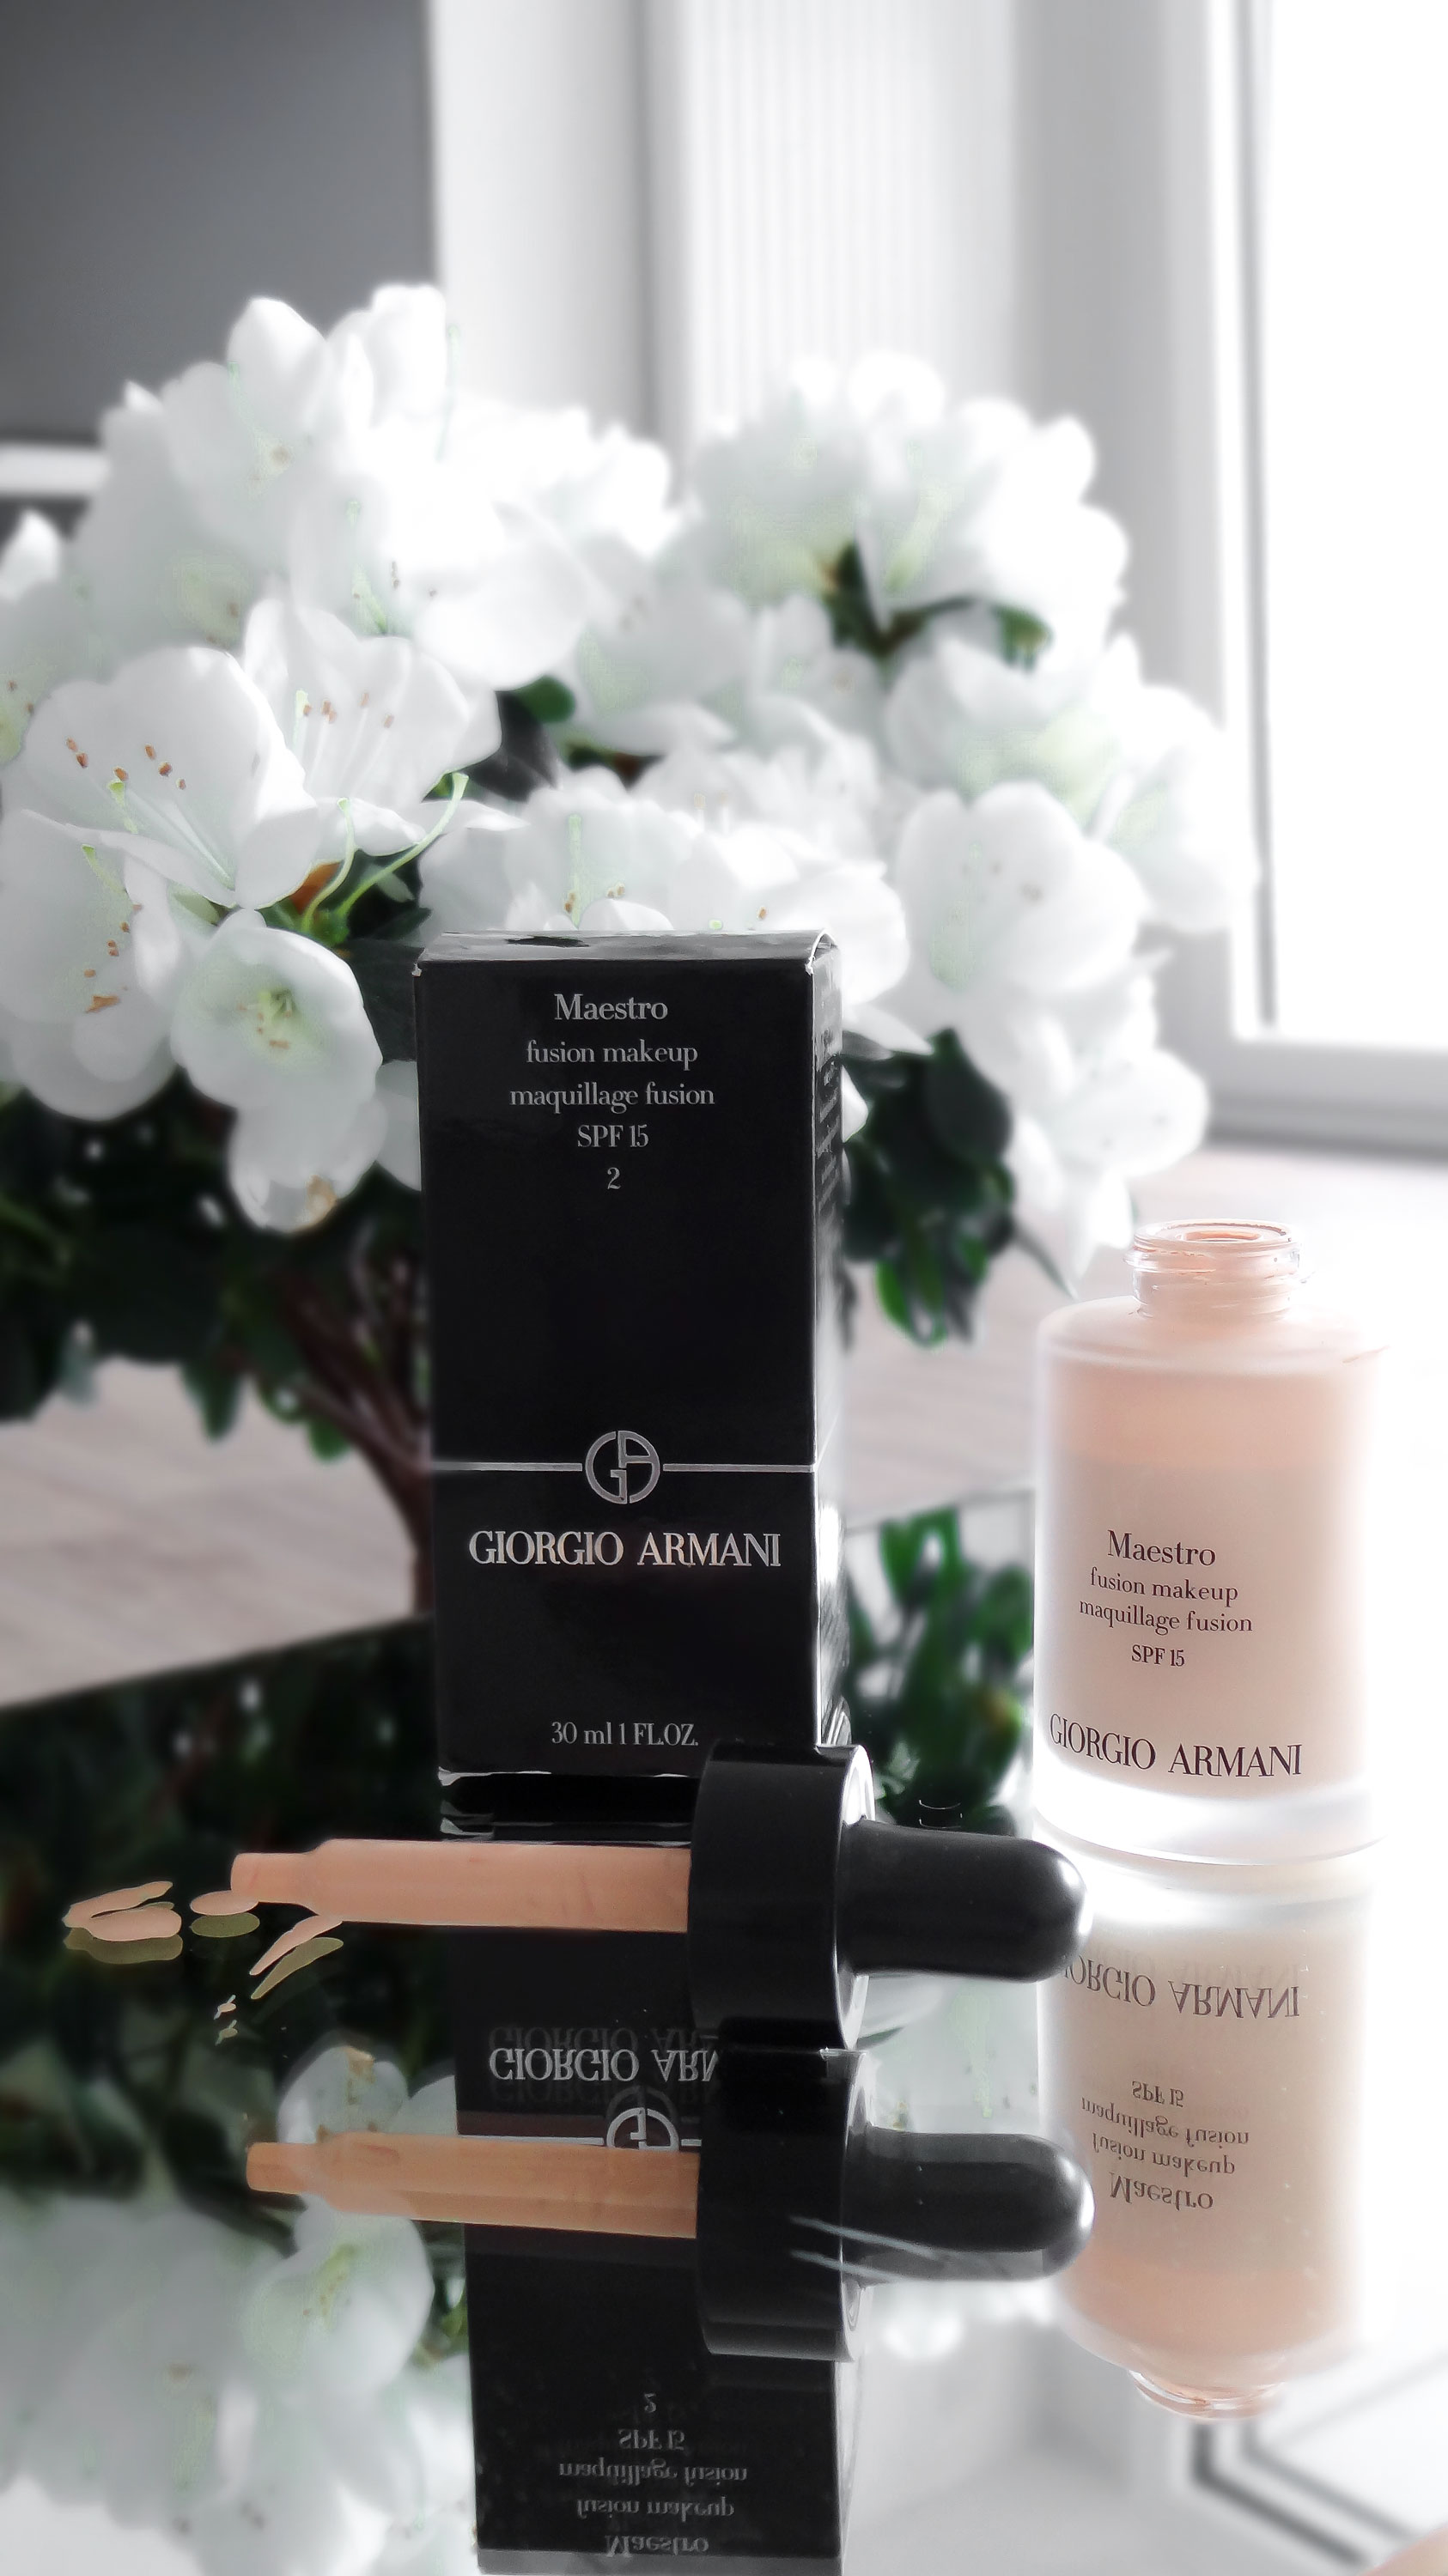 Giorgio-Armani-Fusion-Makeup-liquid-foundation-shade-2-open